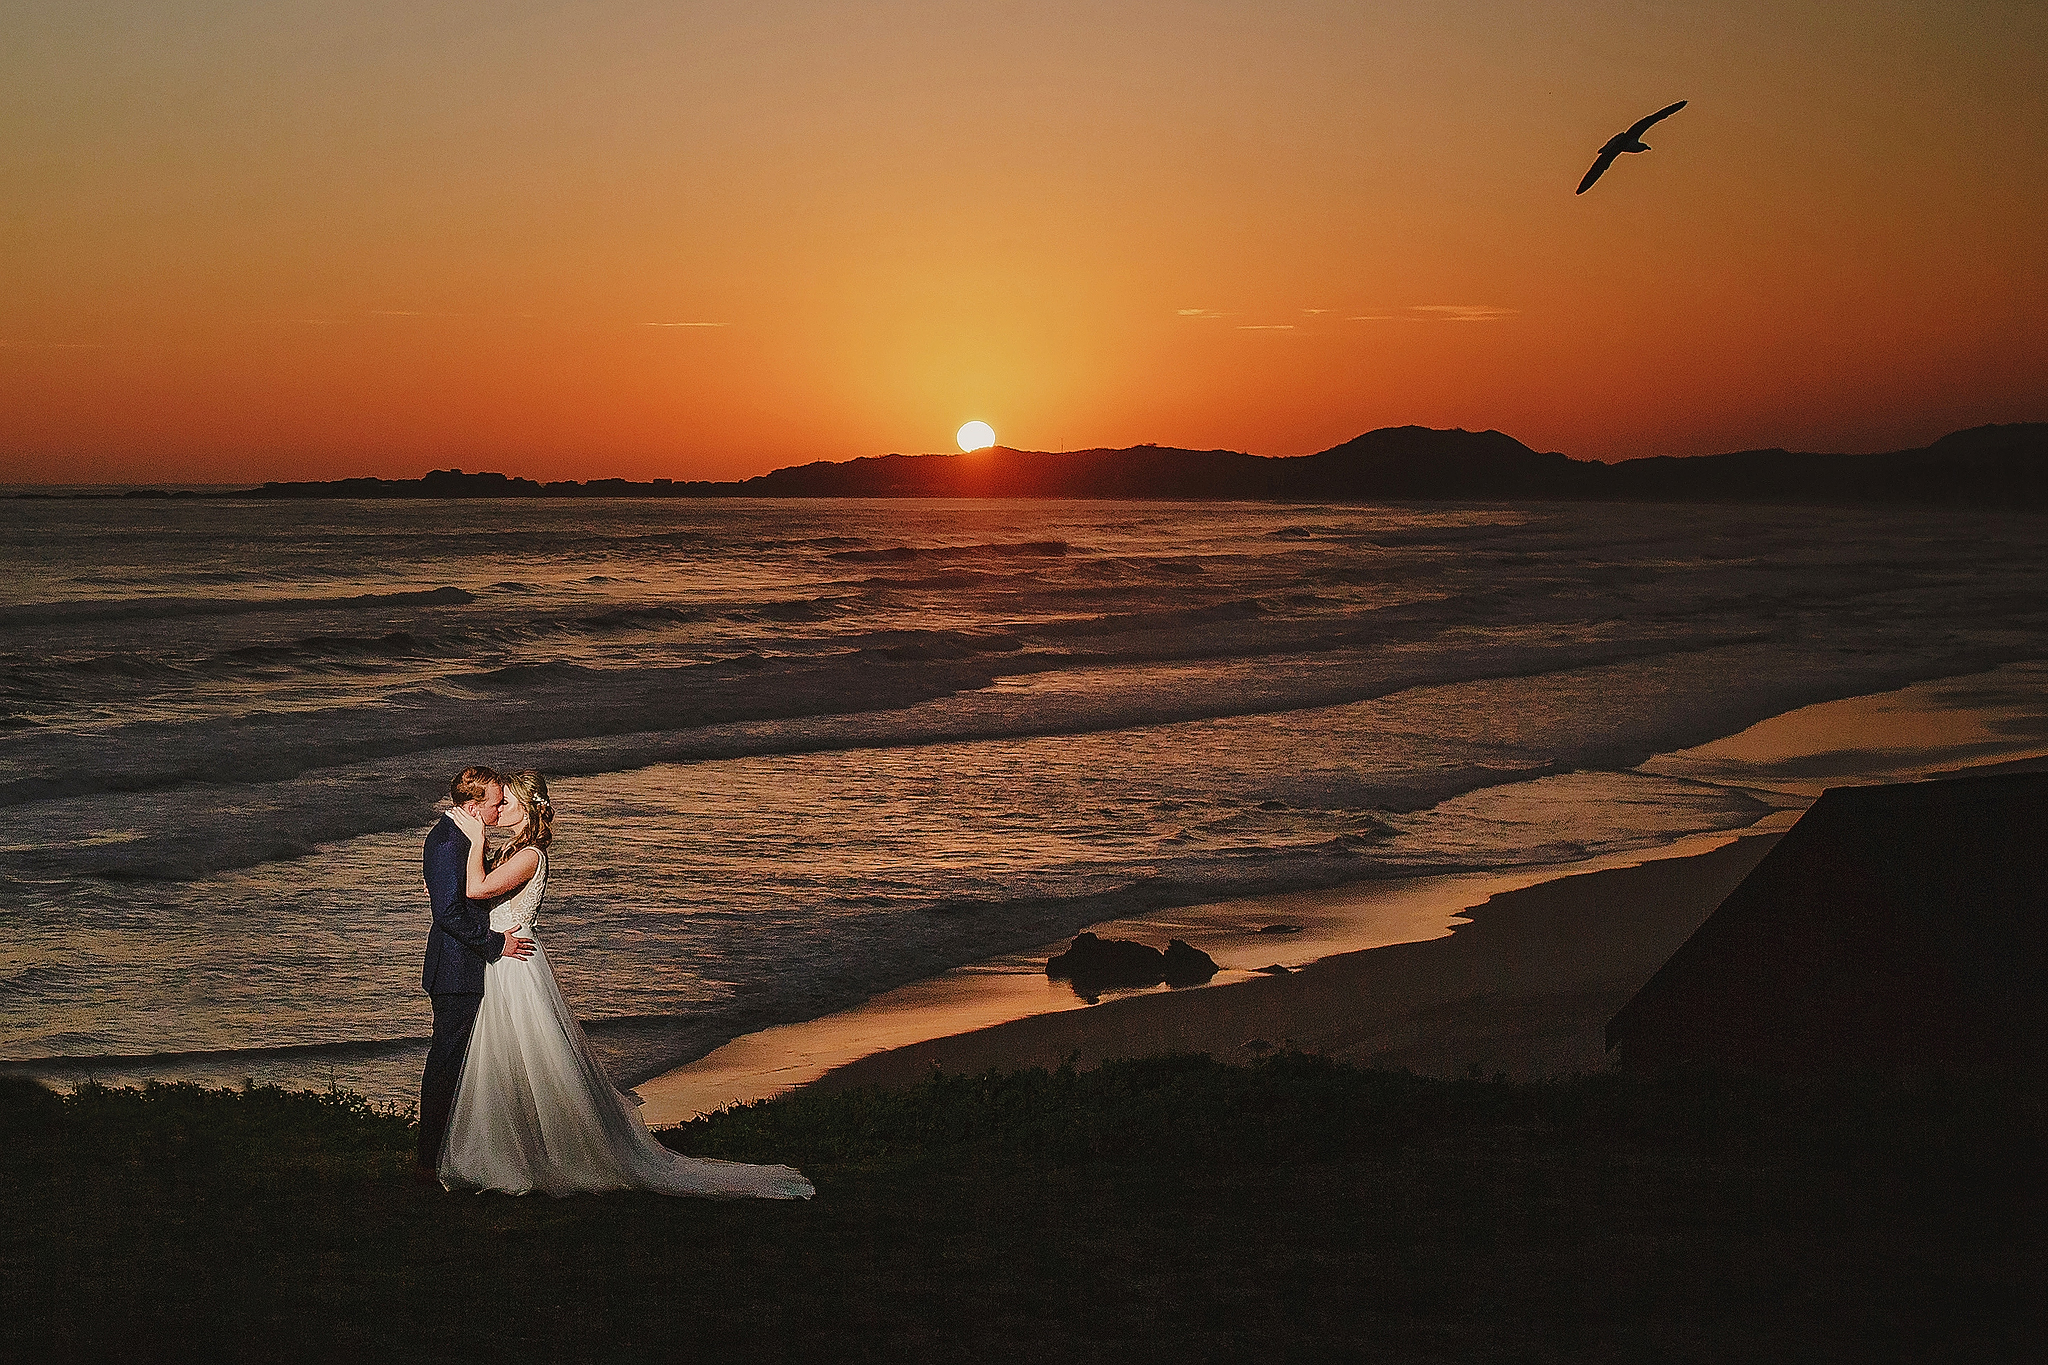 beach-kiss-as-the-sun-sets-ruan-redelinghuys-photography